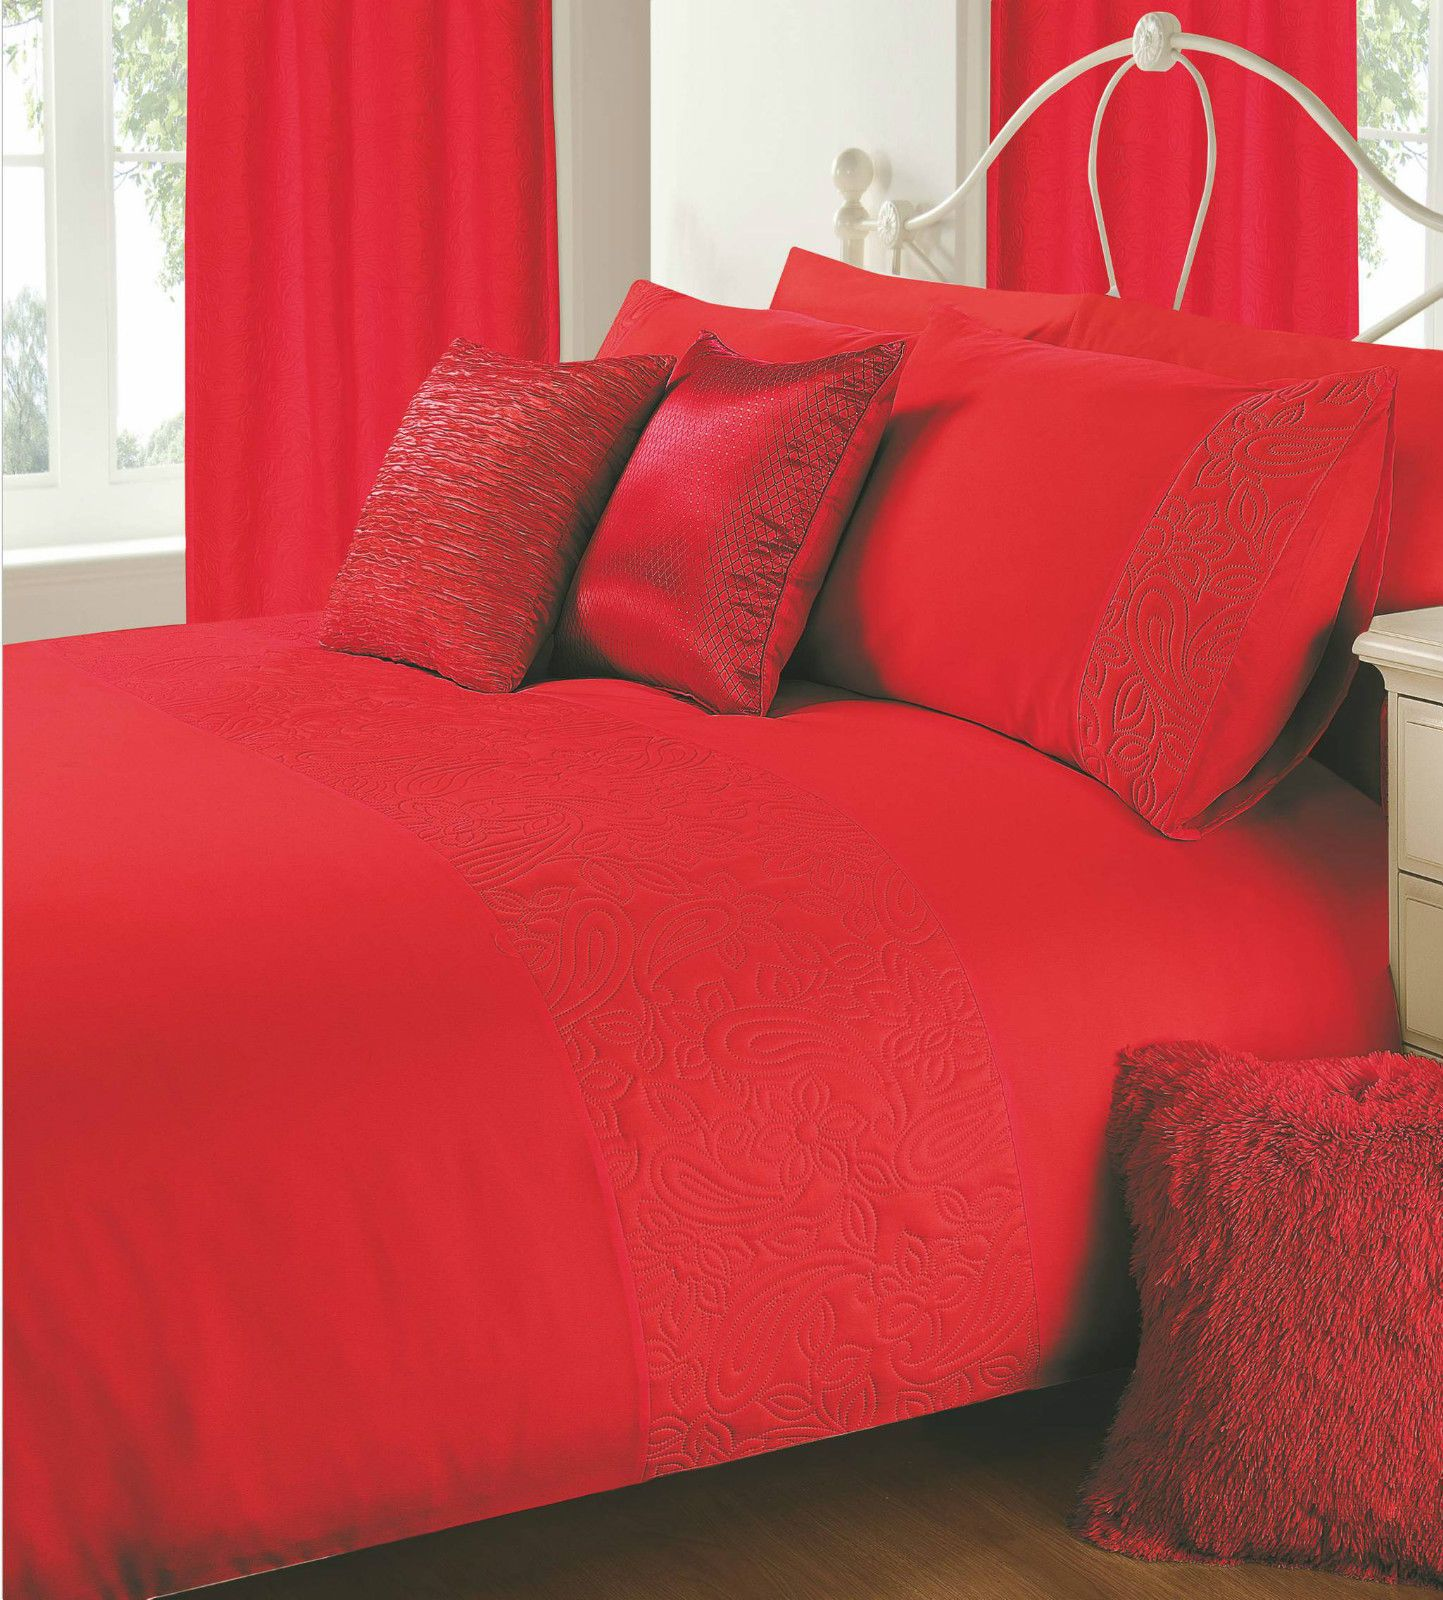 cove place bed r reversible red black cover bedding linen duvet